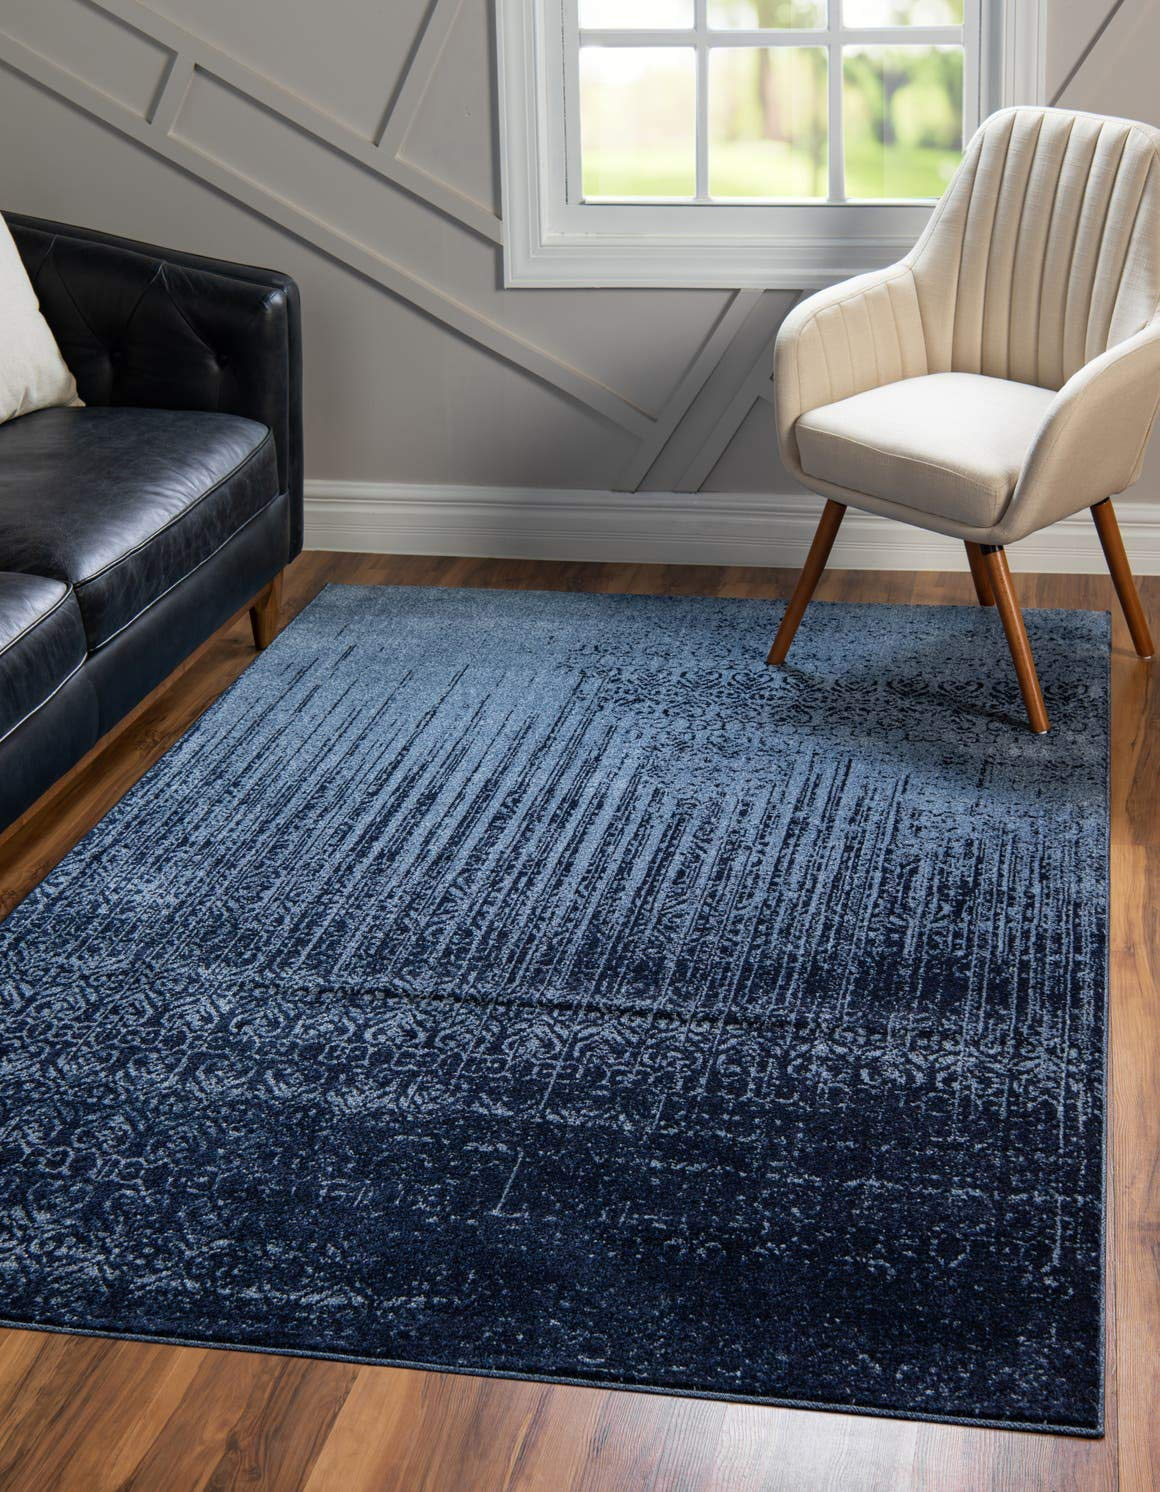 Unique Loom Del Mar Collection Contemporary Transitional Blue Area Rug 6 0 x 9 0